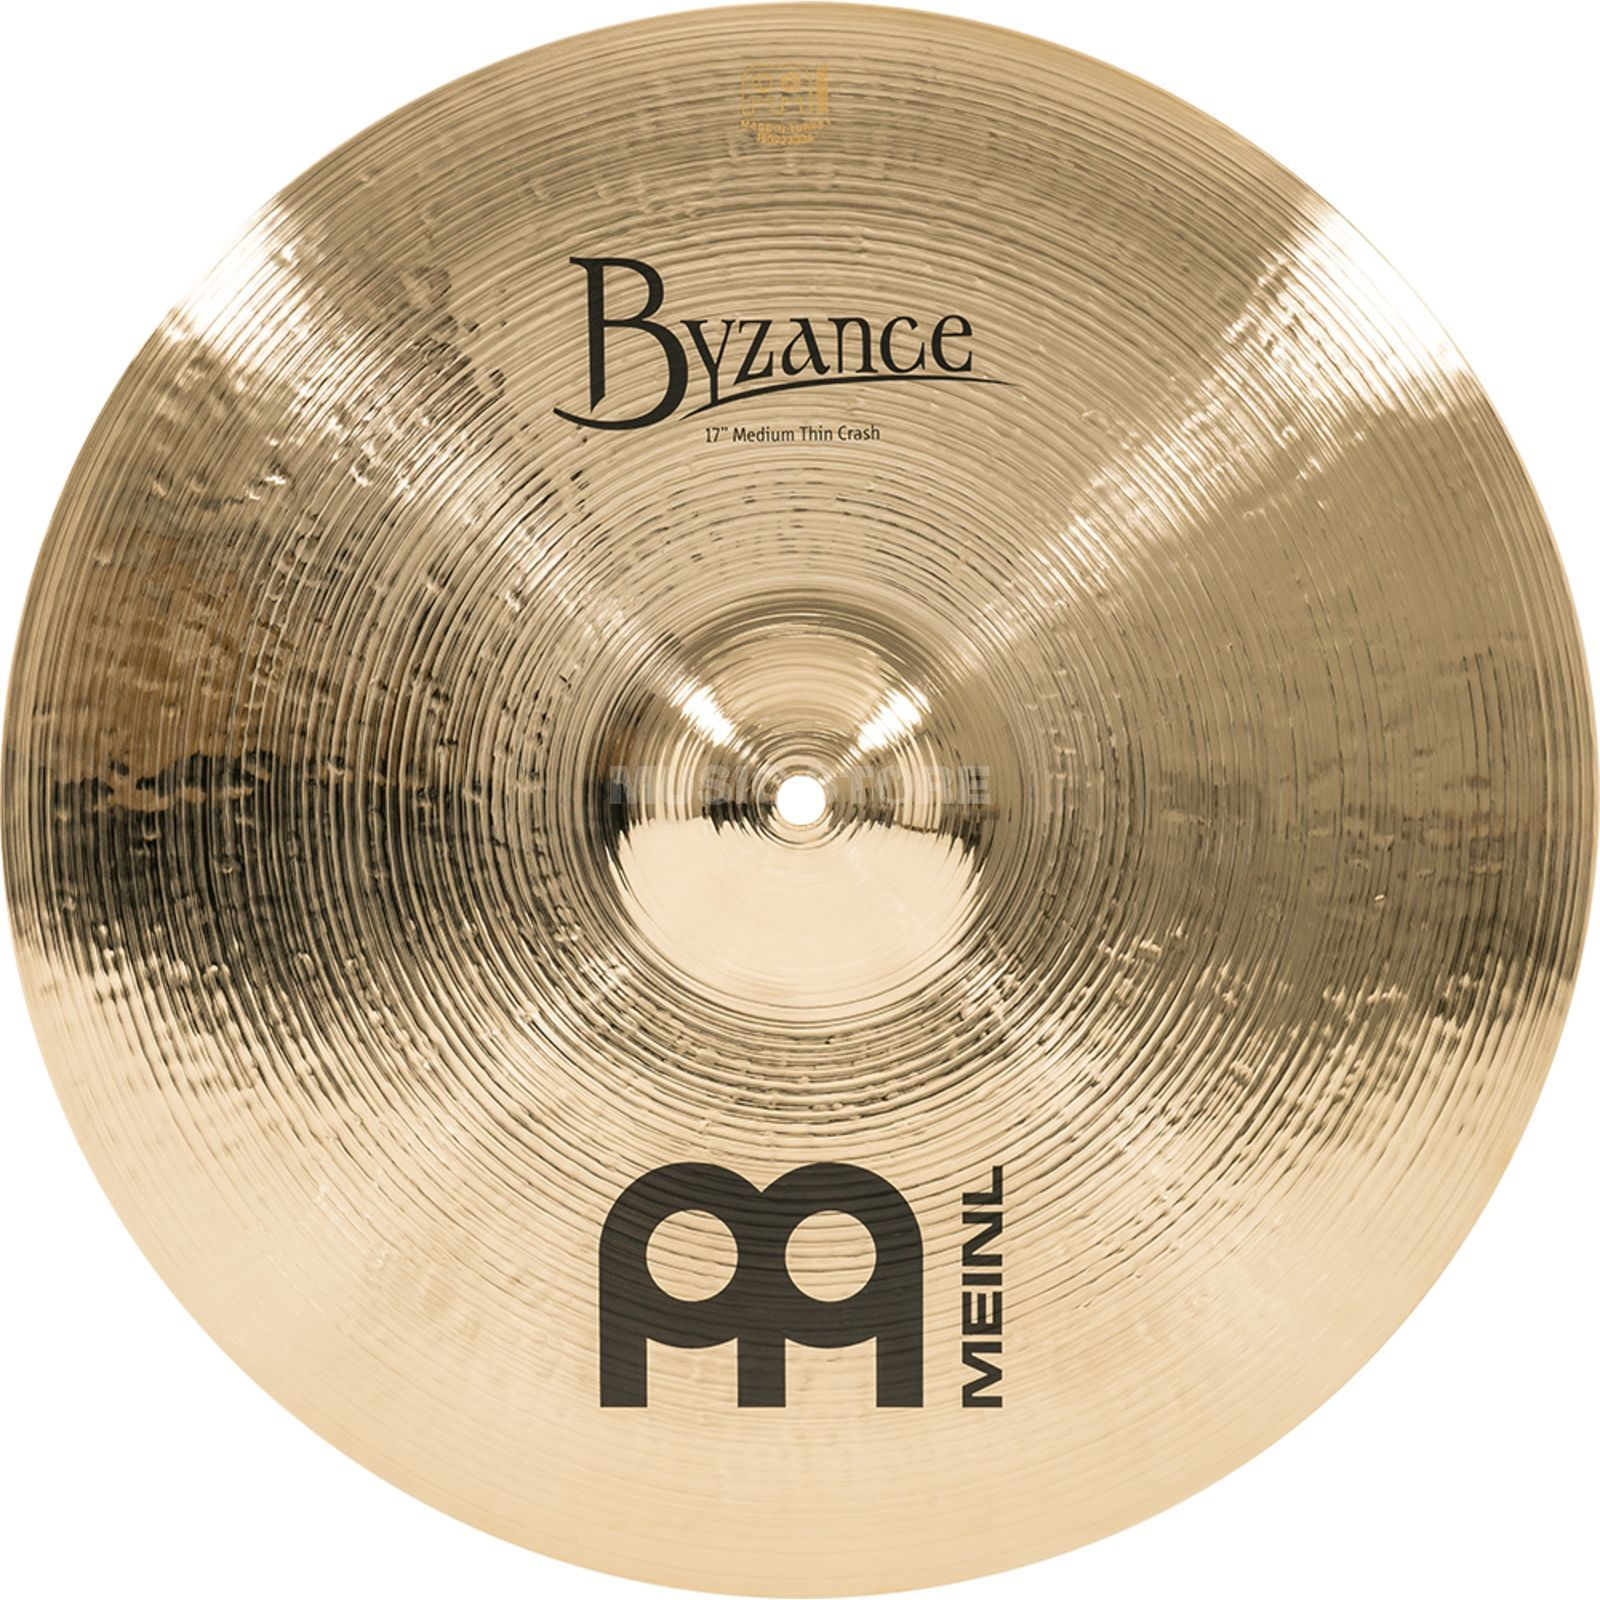 "Meinl Byzance Medium Thin Crash 17"", B17MTC-B, Brilliant Finish Produktbild"